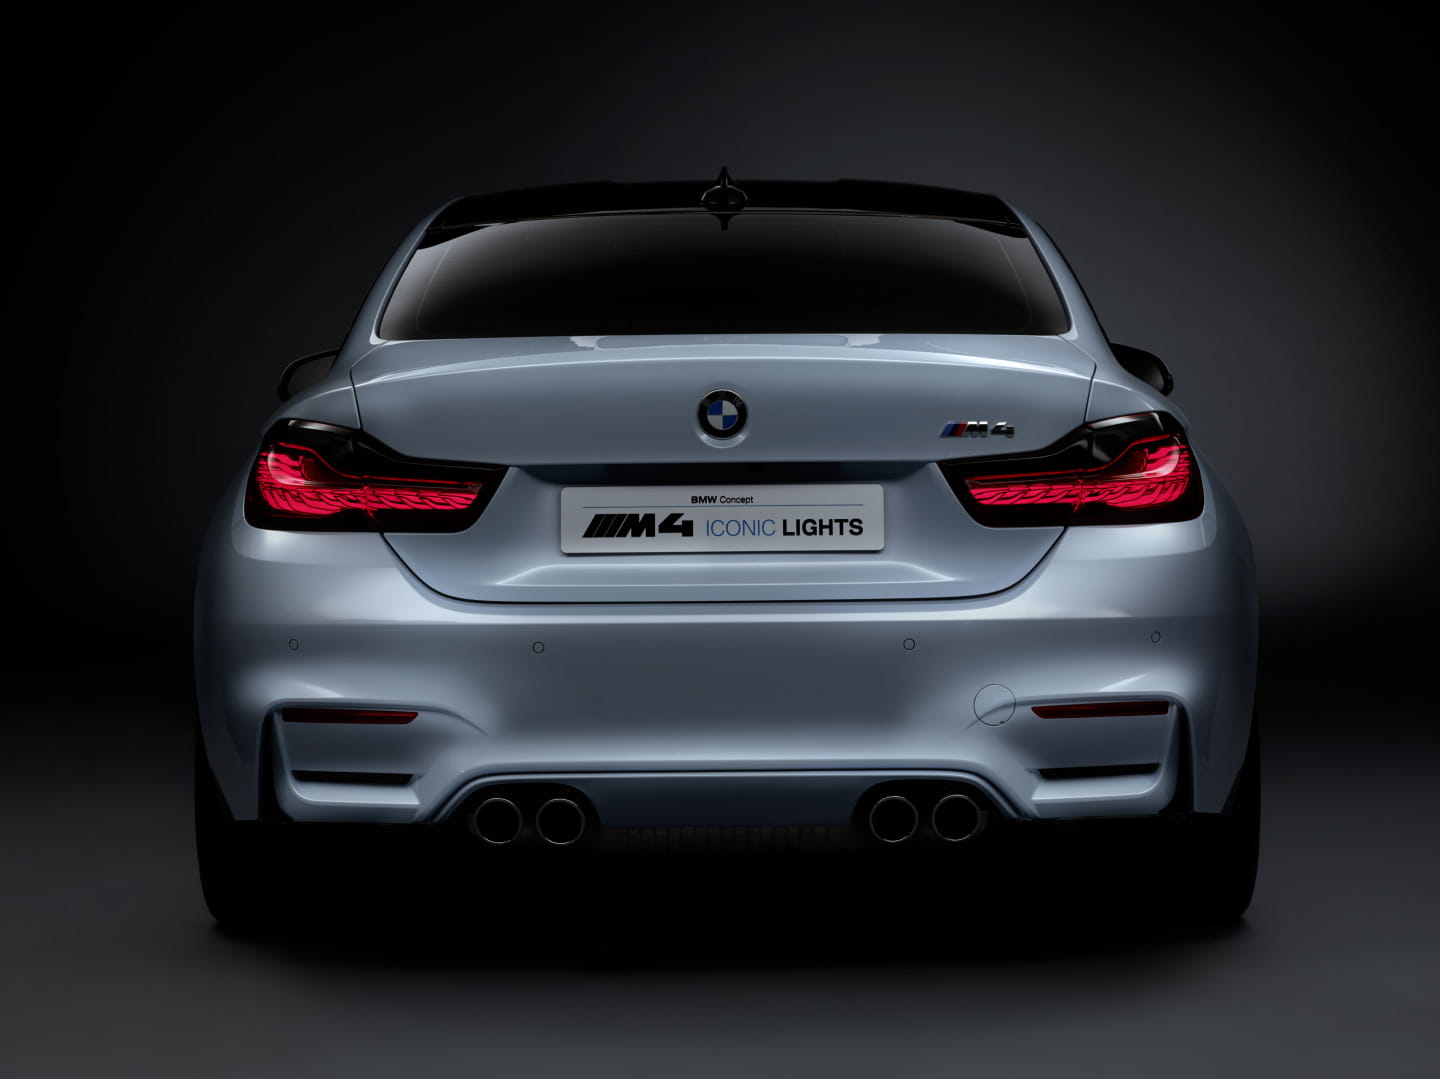 BMW_M4_Concept_Iconic_Lights_8